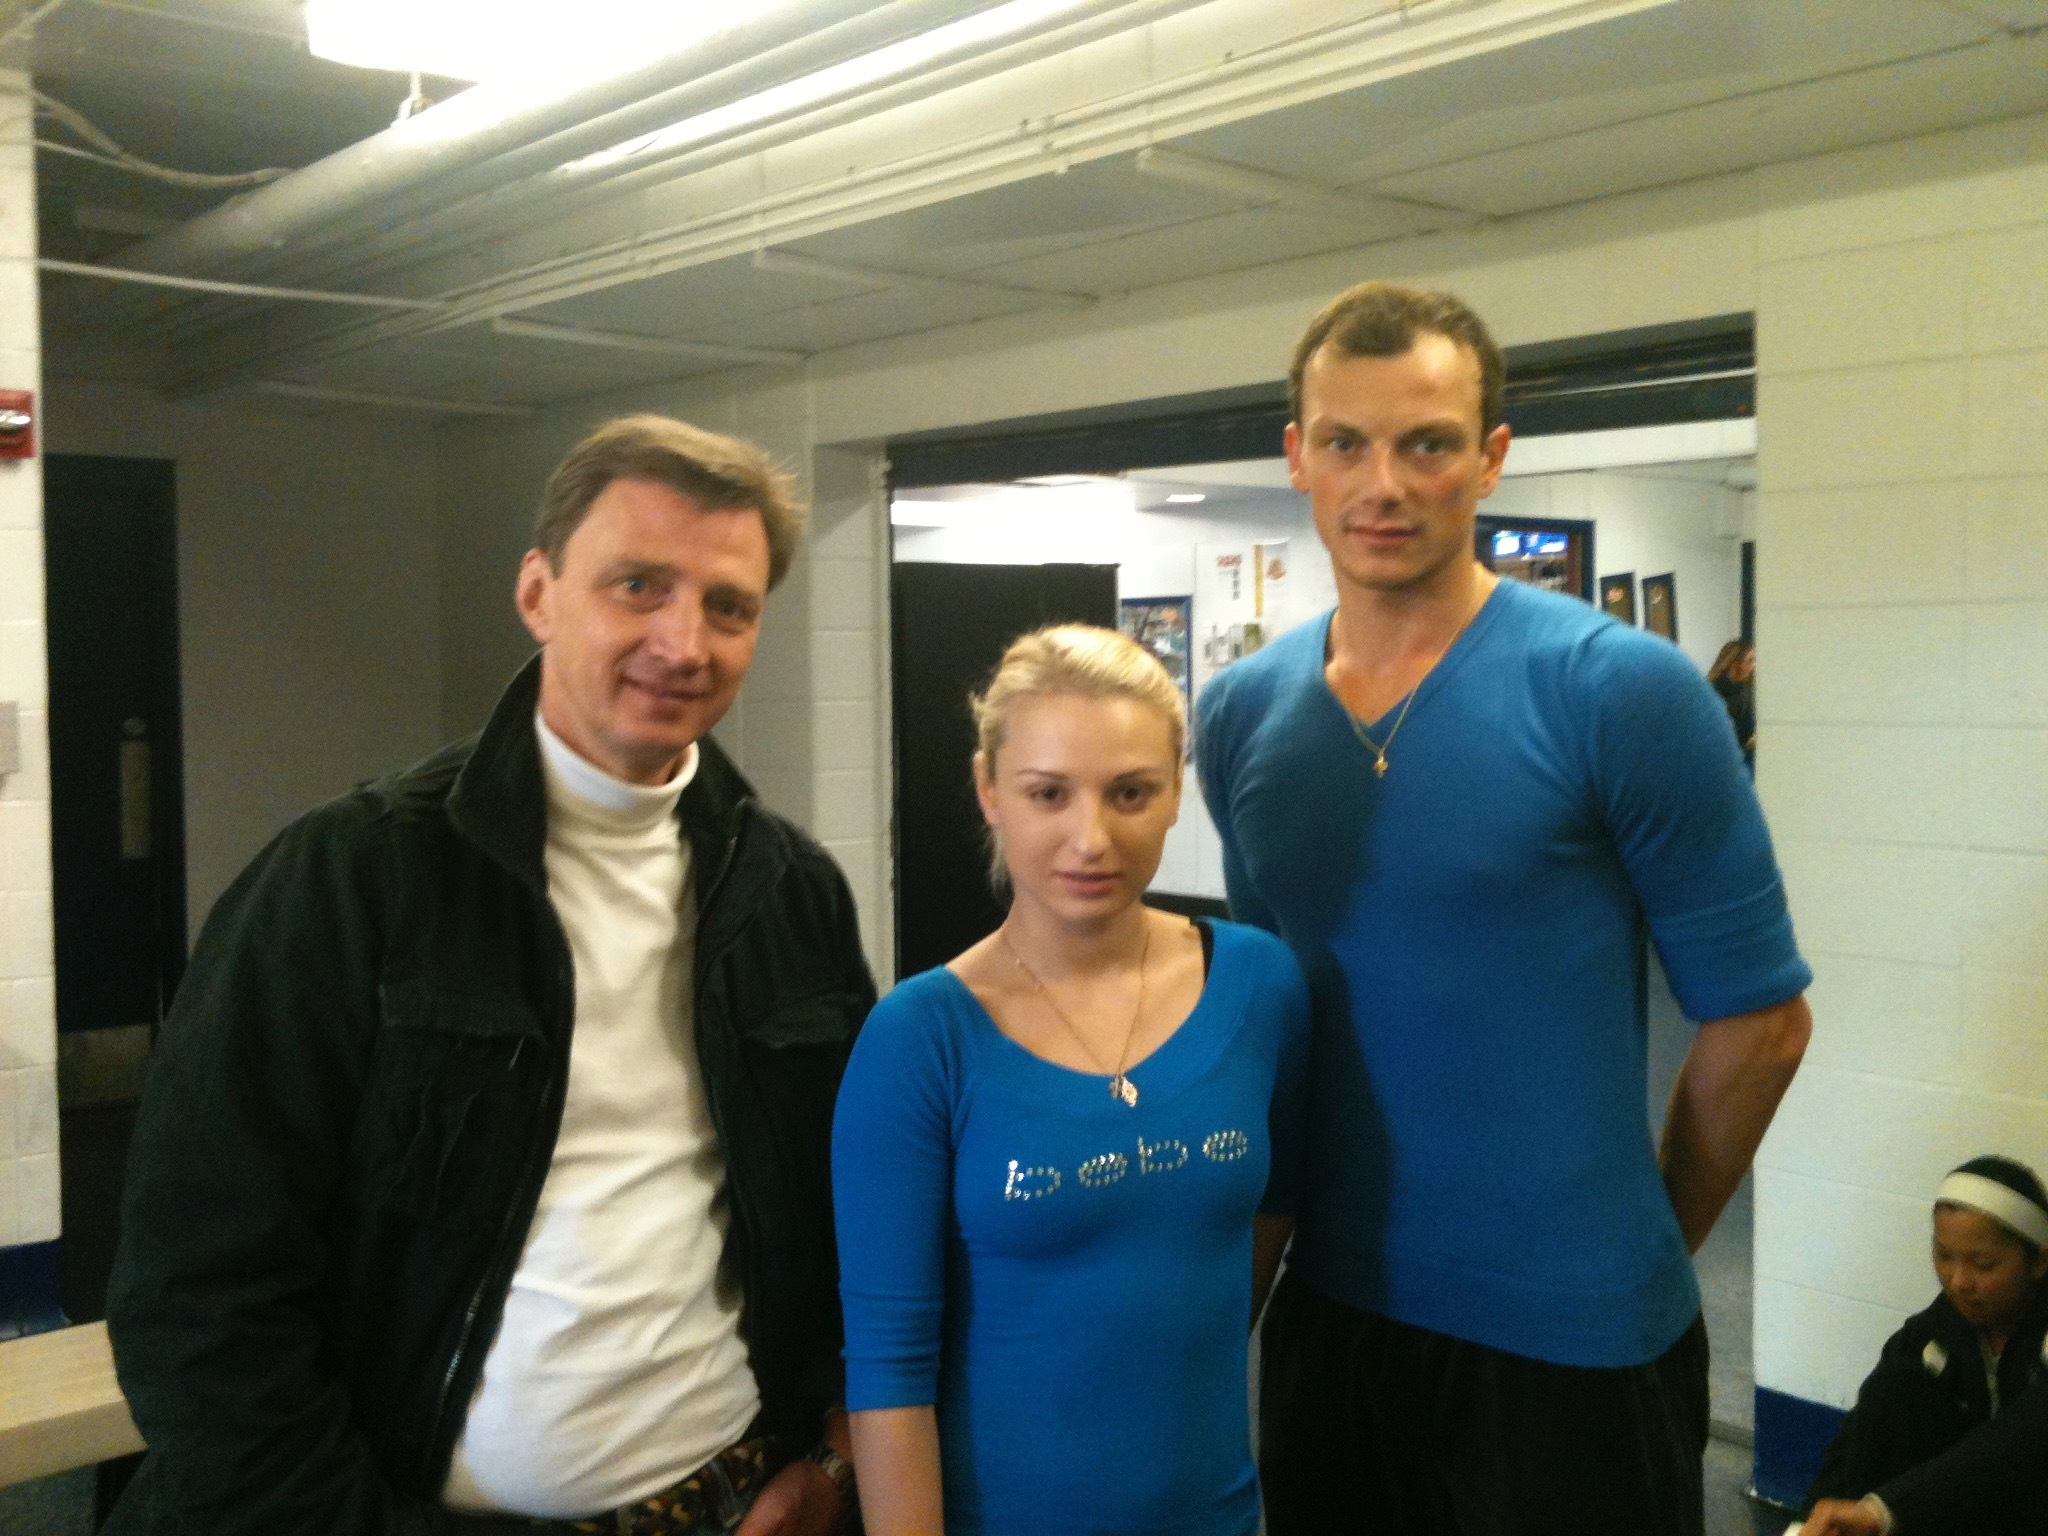 Oleg Vassiliev and a young pair team for the manleywoman skatecast, a figure skating podcast